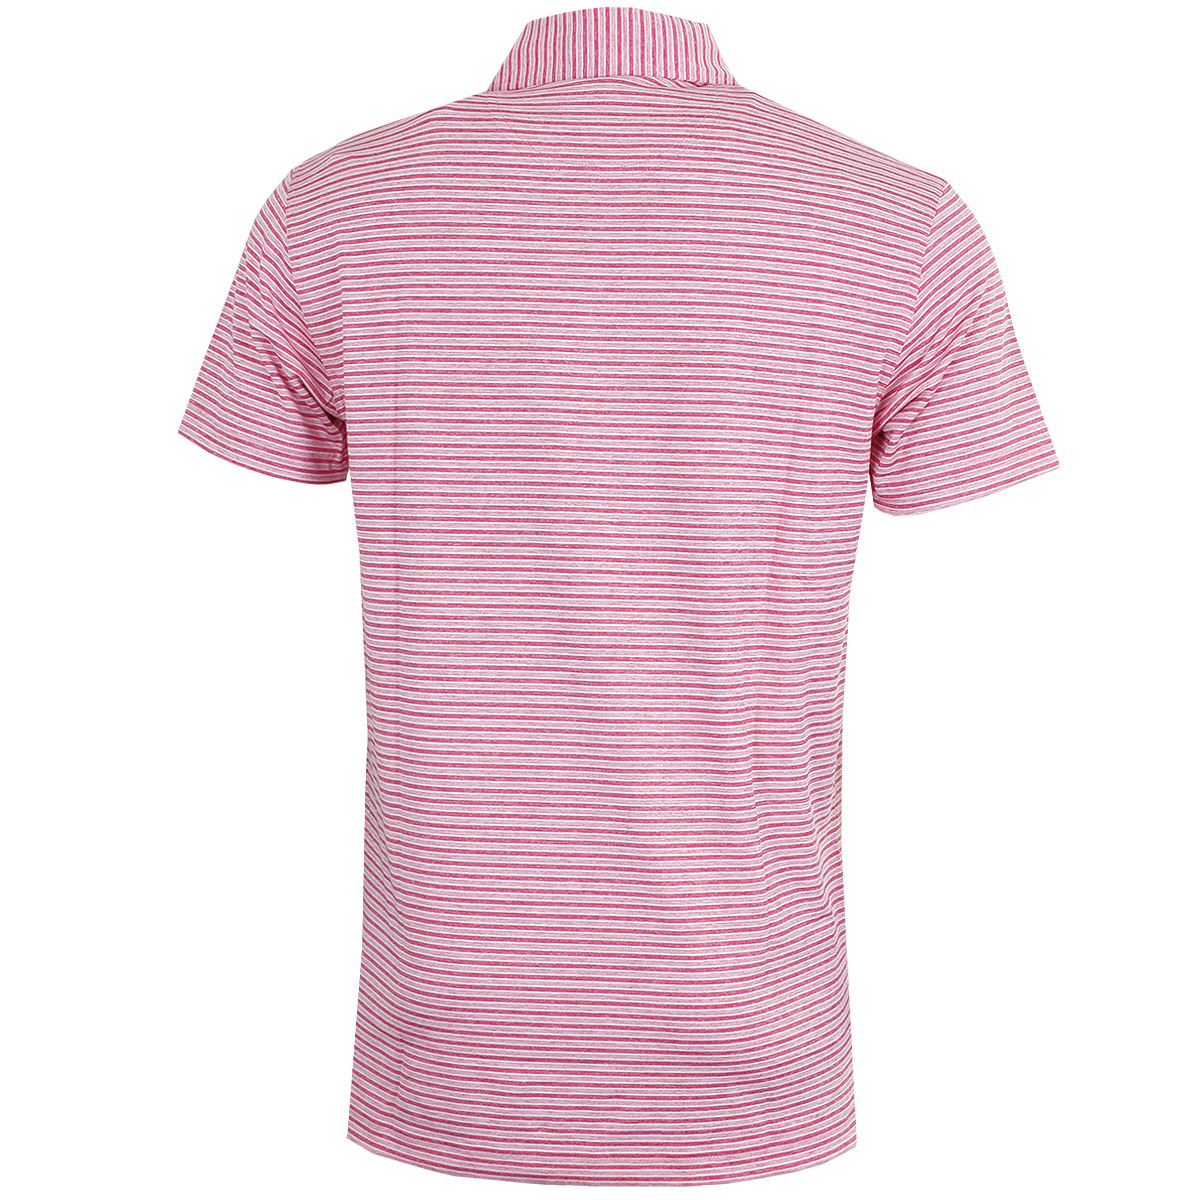 Bobby-Jones-Mens-XH20-Sutton-Stripe-Golf-Polo-Shirt-72-OFF-RRP thumbnail 3